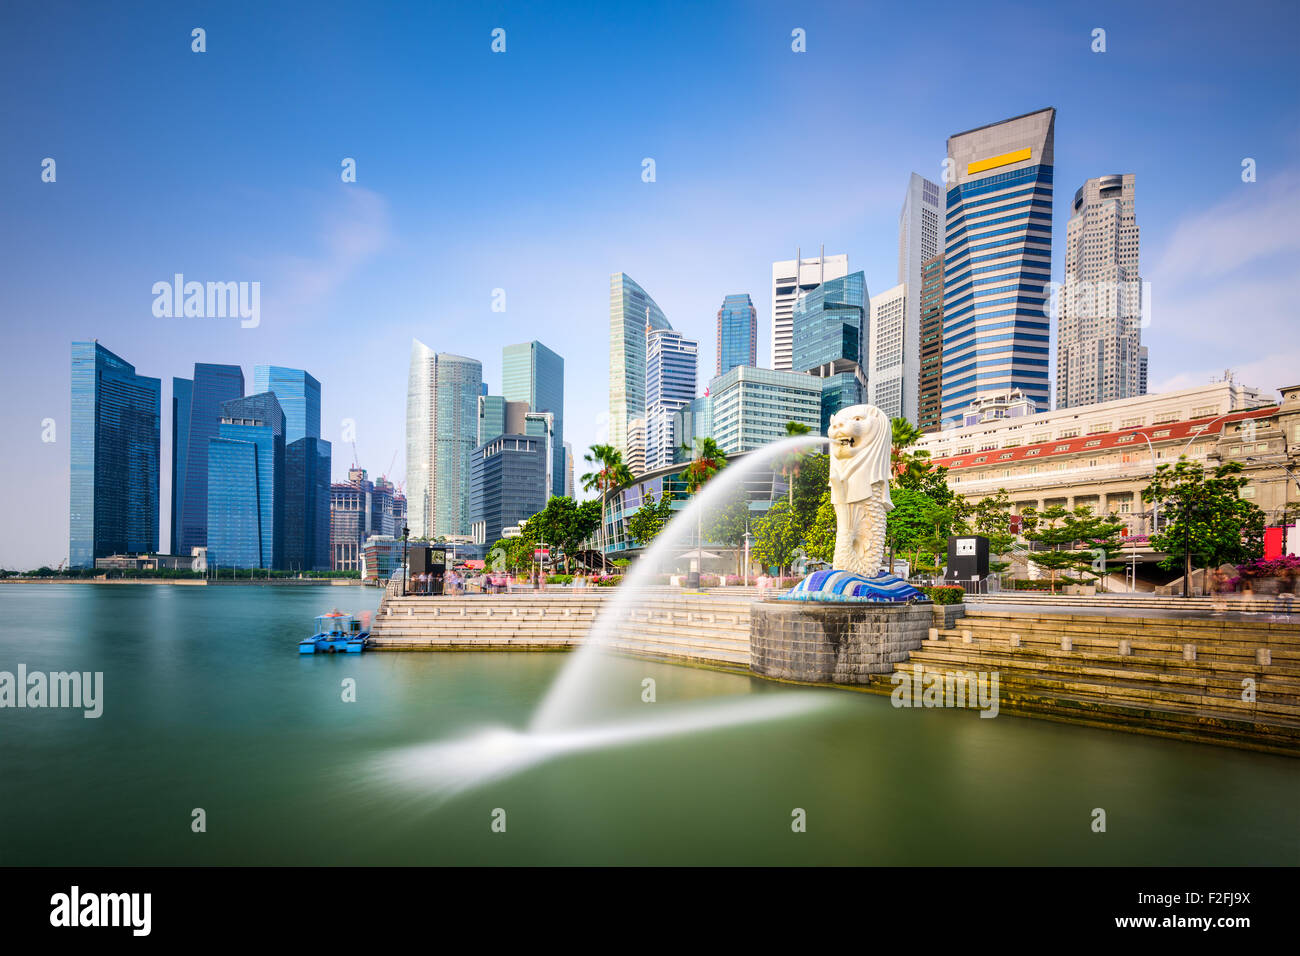 Singapore skyline at the Merlion fountain. - Stock Image